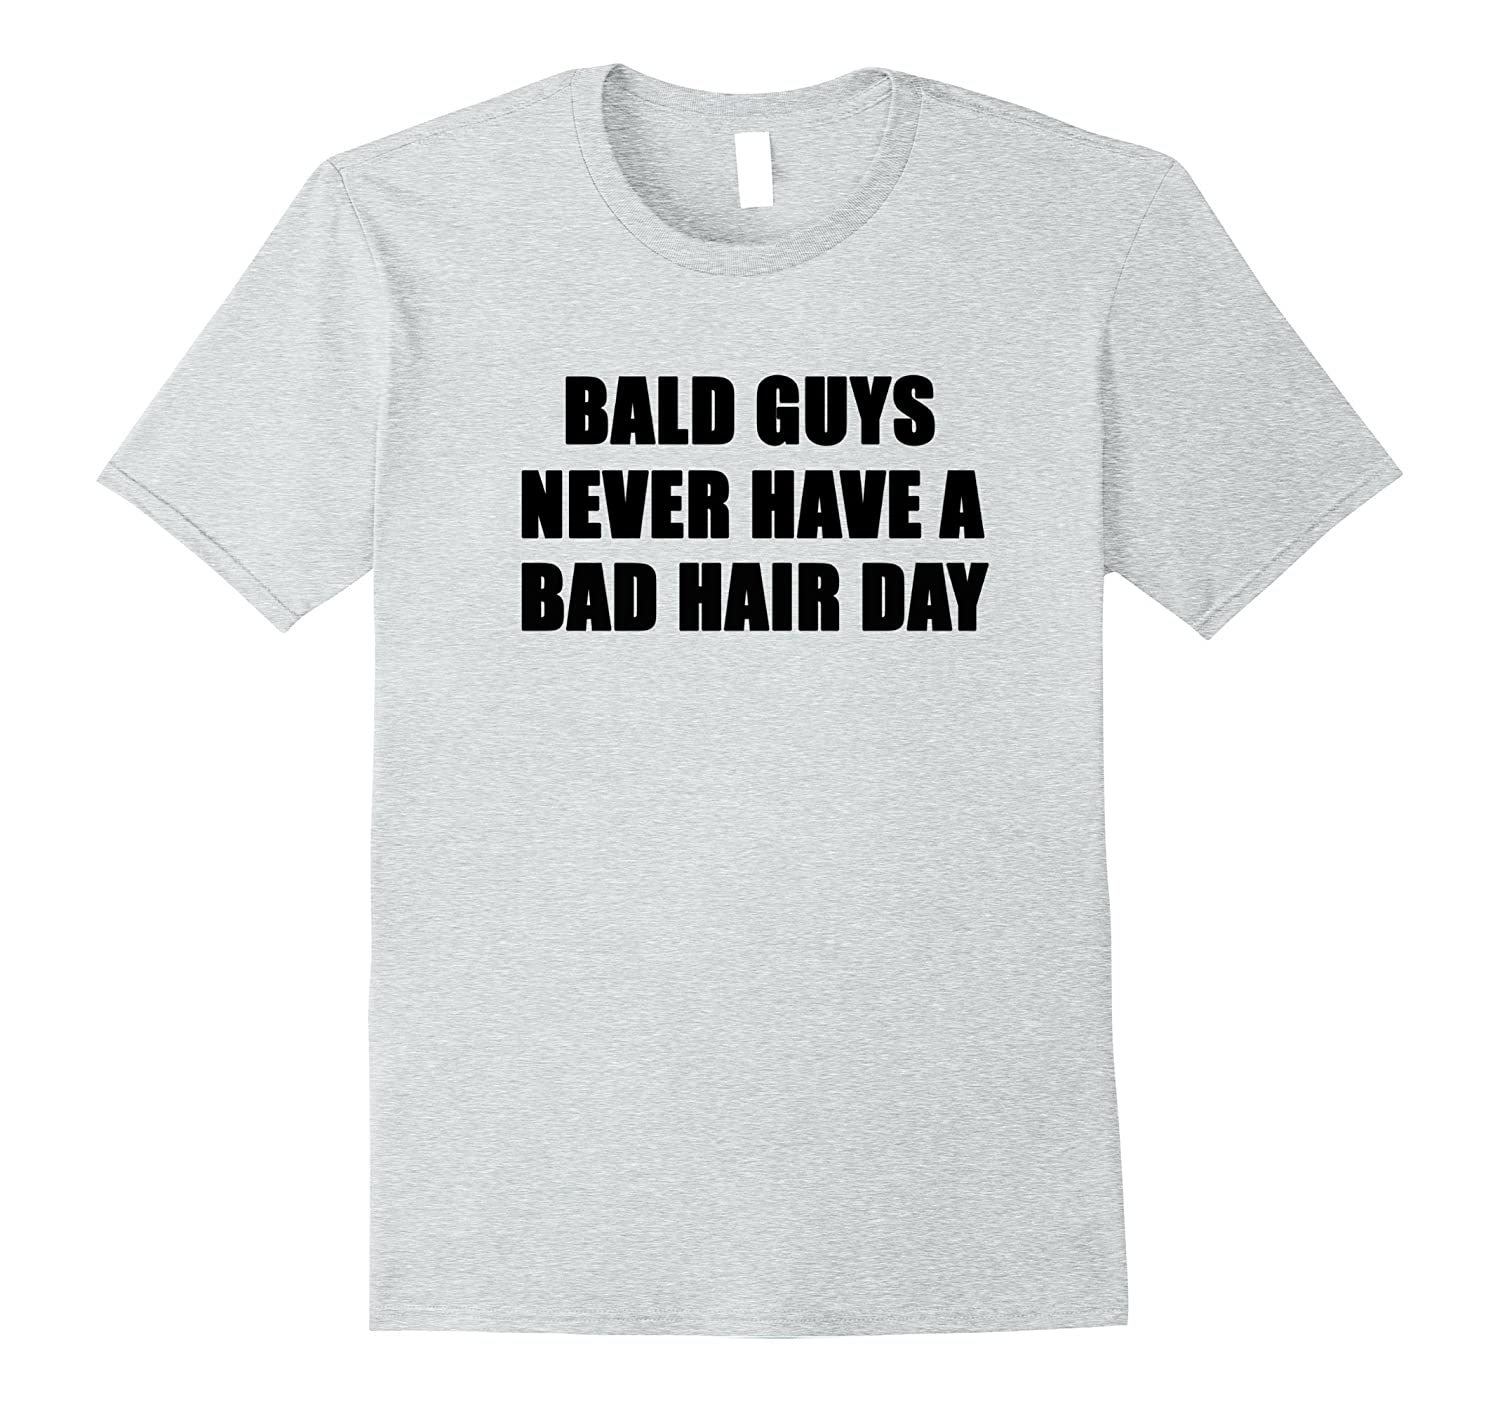 BALD GUYS NEVER HAVE A BAD HAIR DAY FUNNY TEE SHIRT